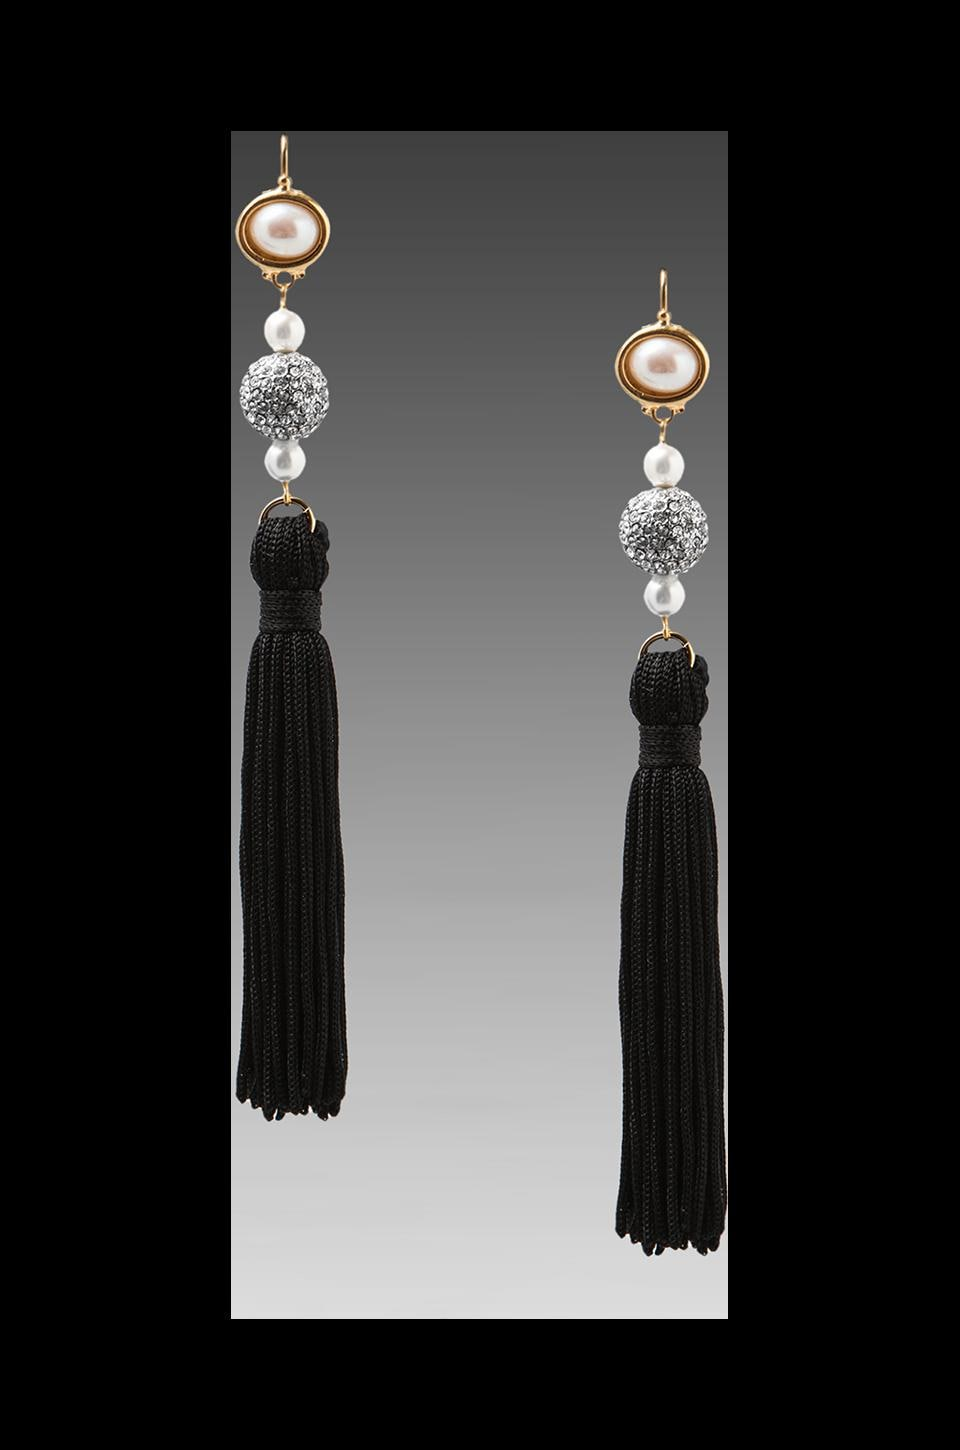 Kenneth Jay Lane Tassel and Pearls Earring in Black/Gold